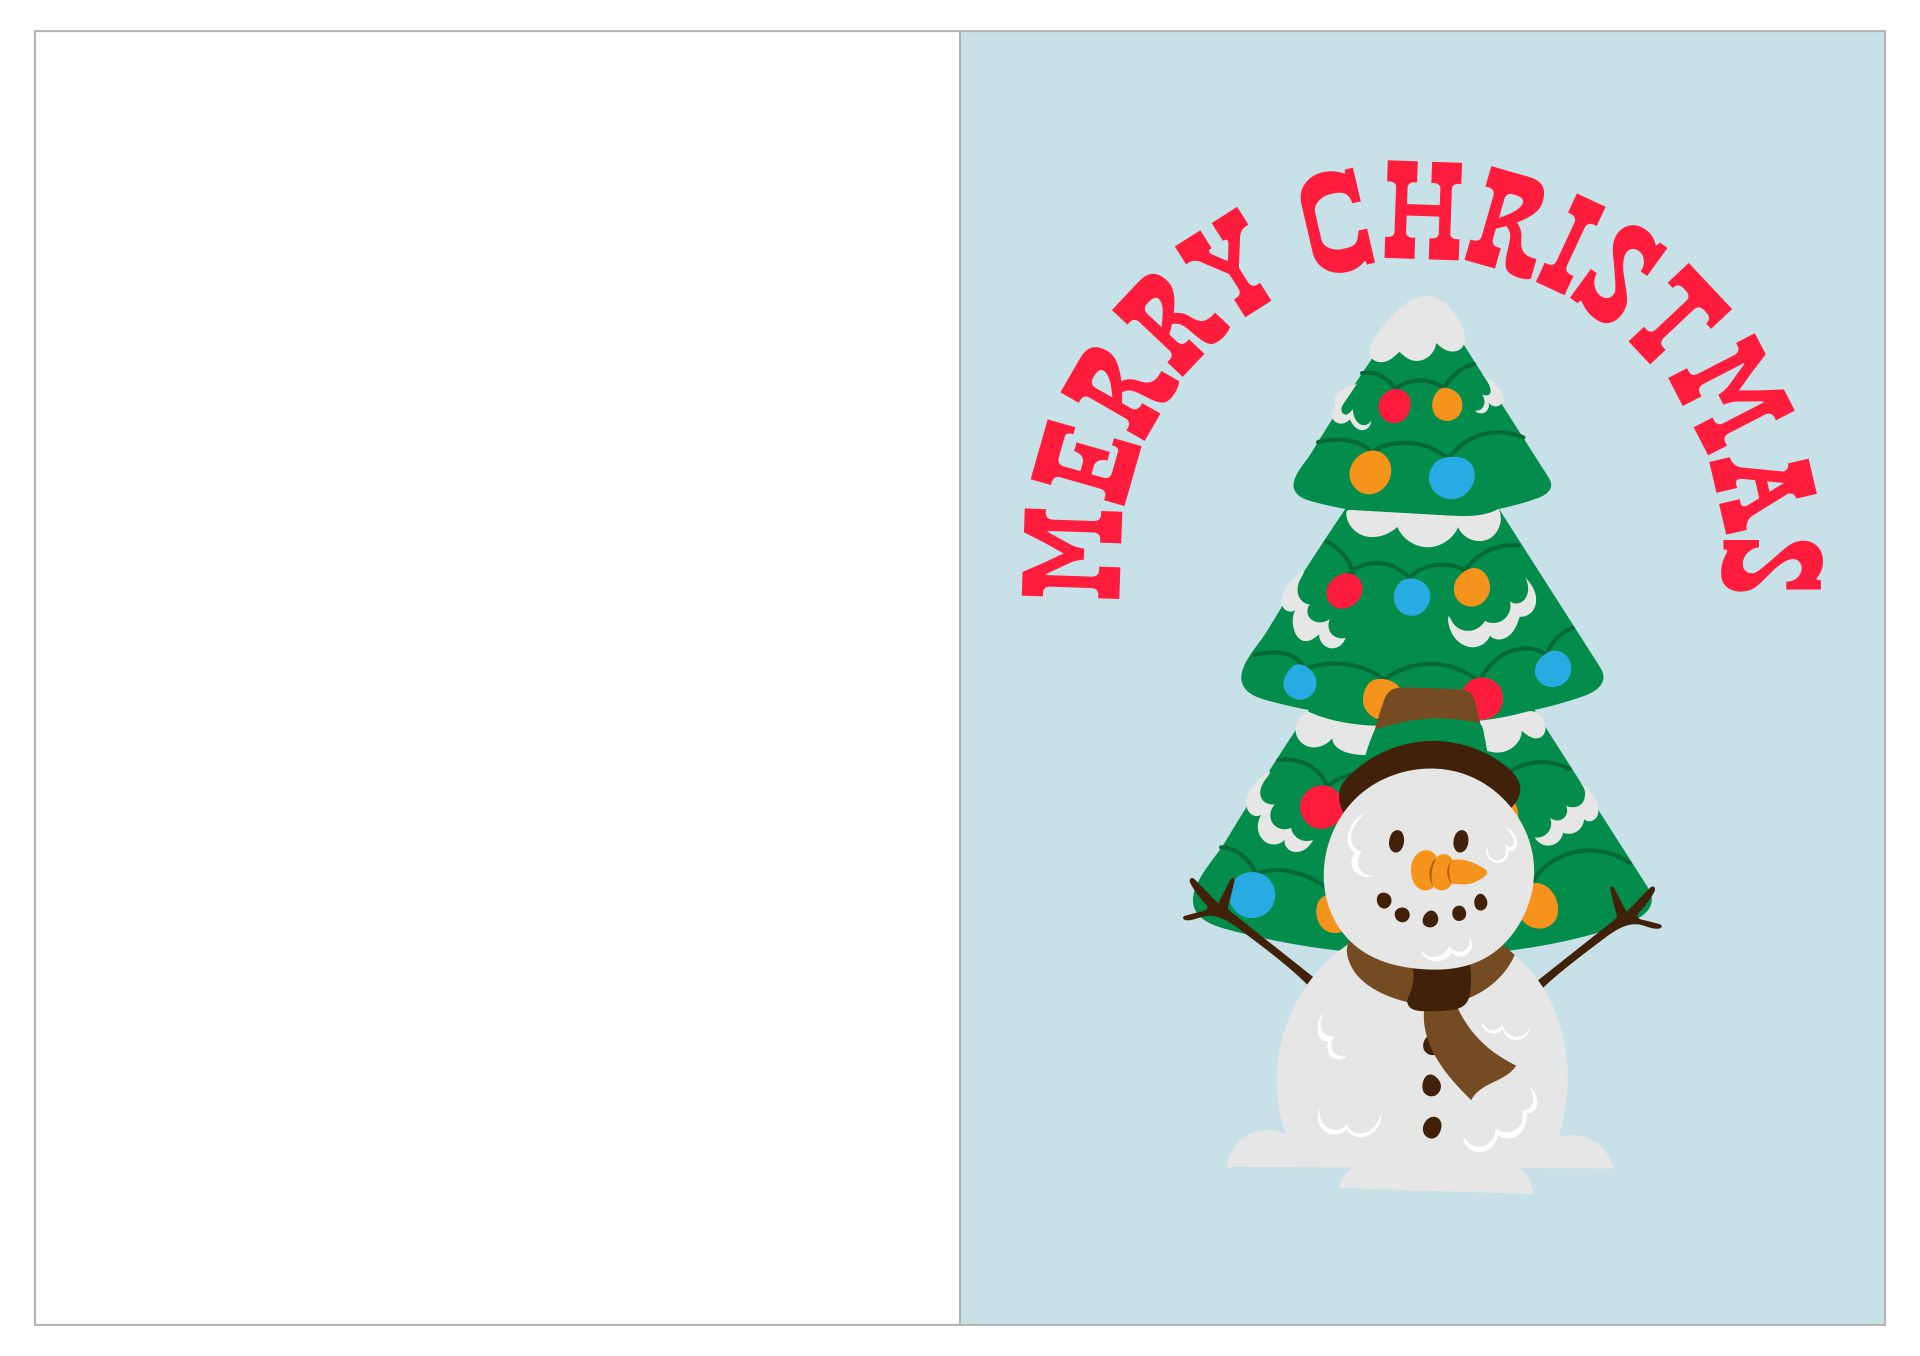 ... Christmas Card Templates Printable & Downloadable Christmas Card